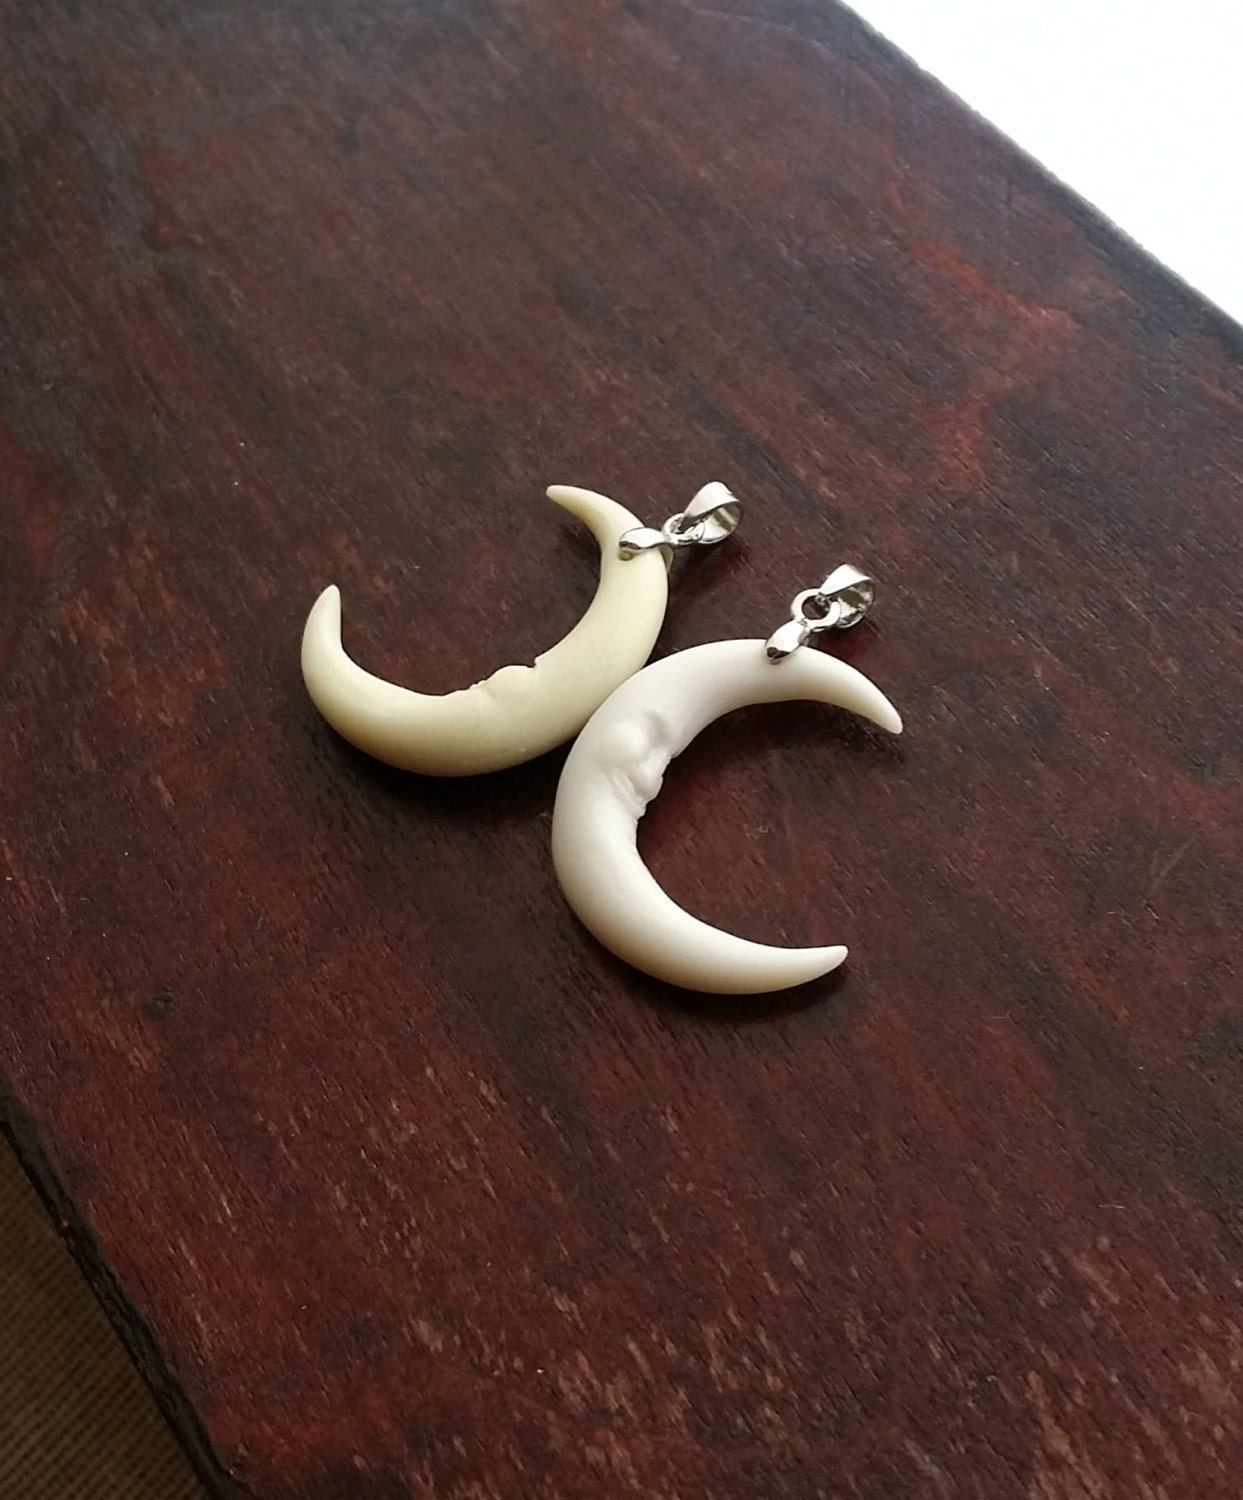 Half Crescent Moon With Face Tattoo: Crescent Moon Charm Necklace Smiling Face Half Moon Charm